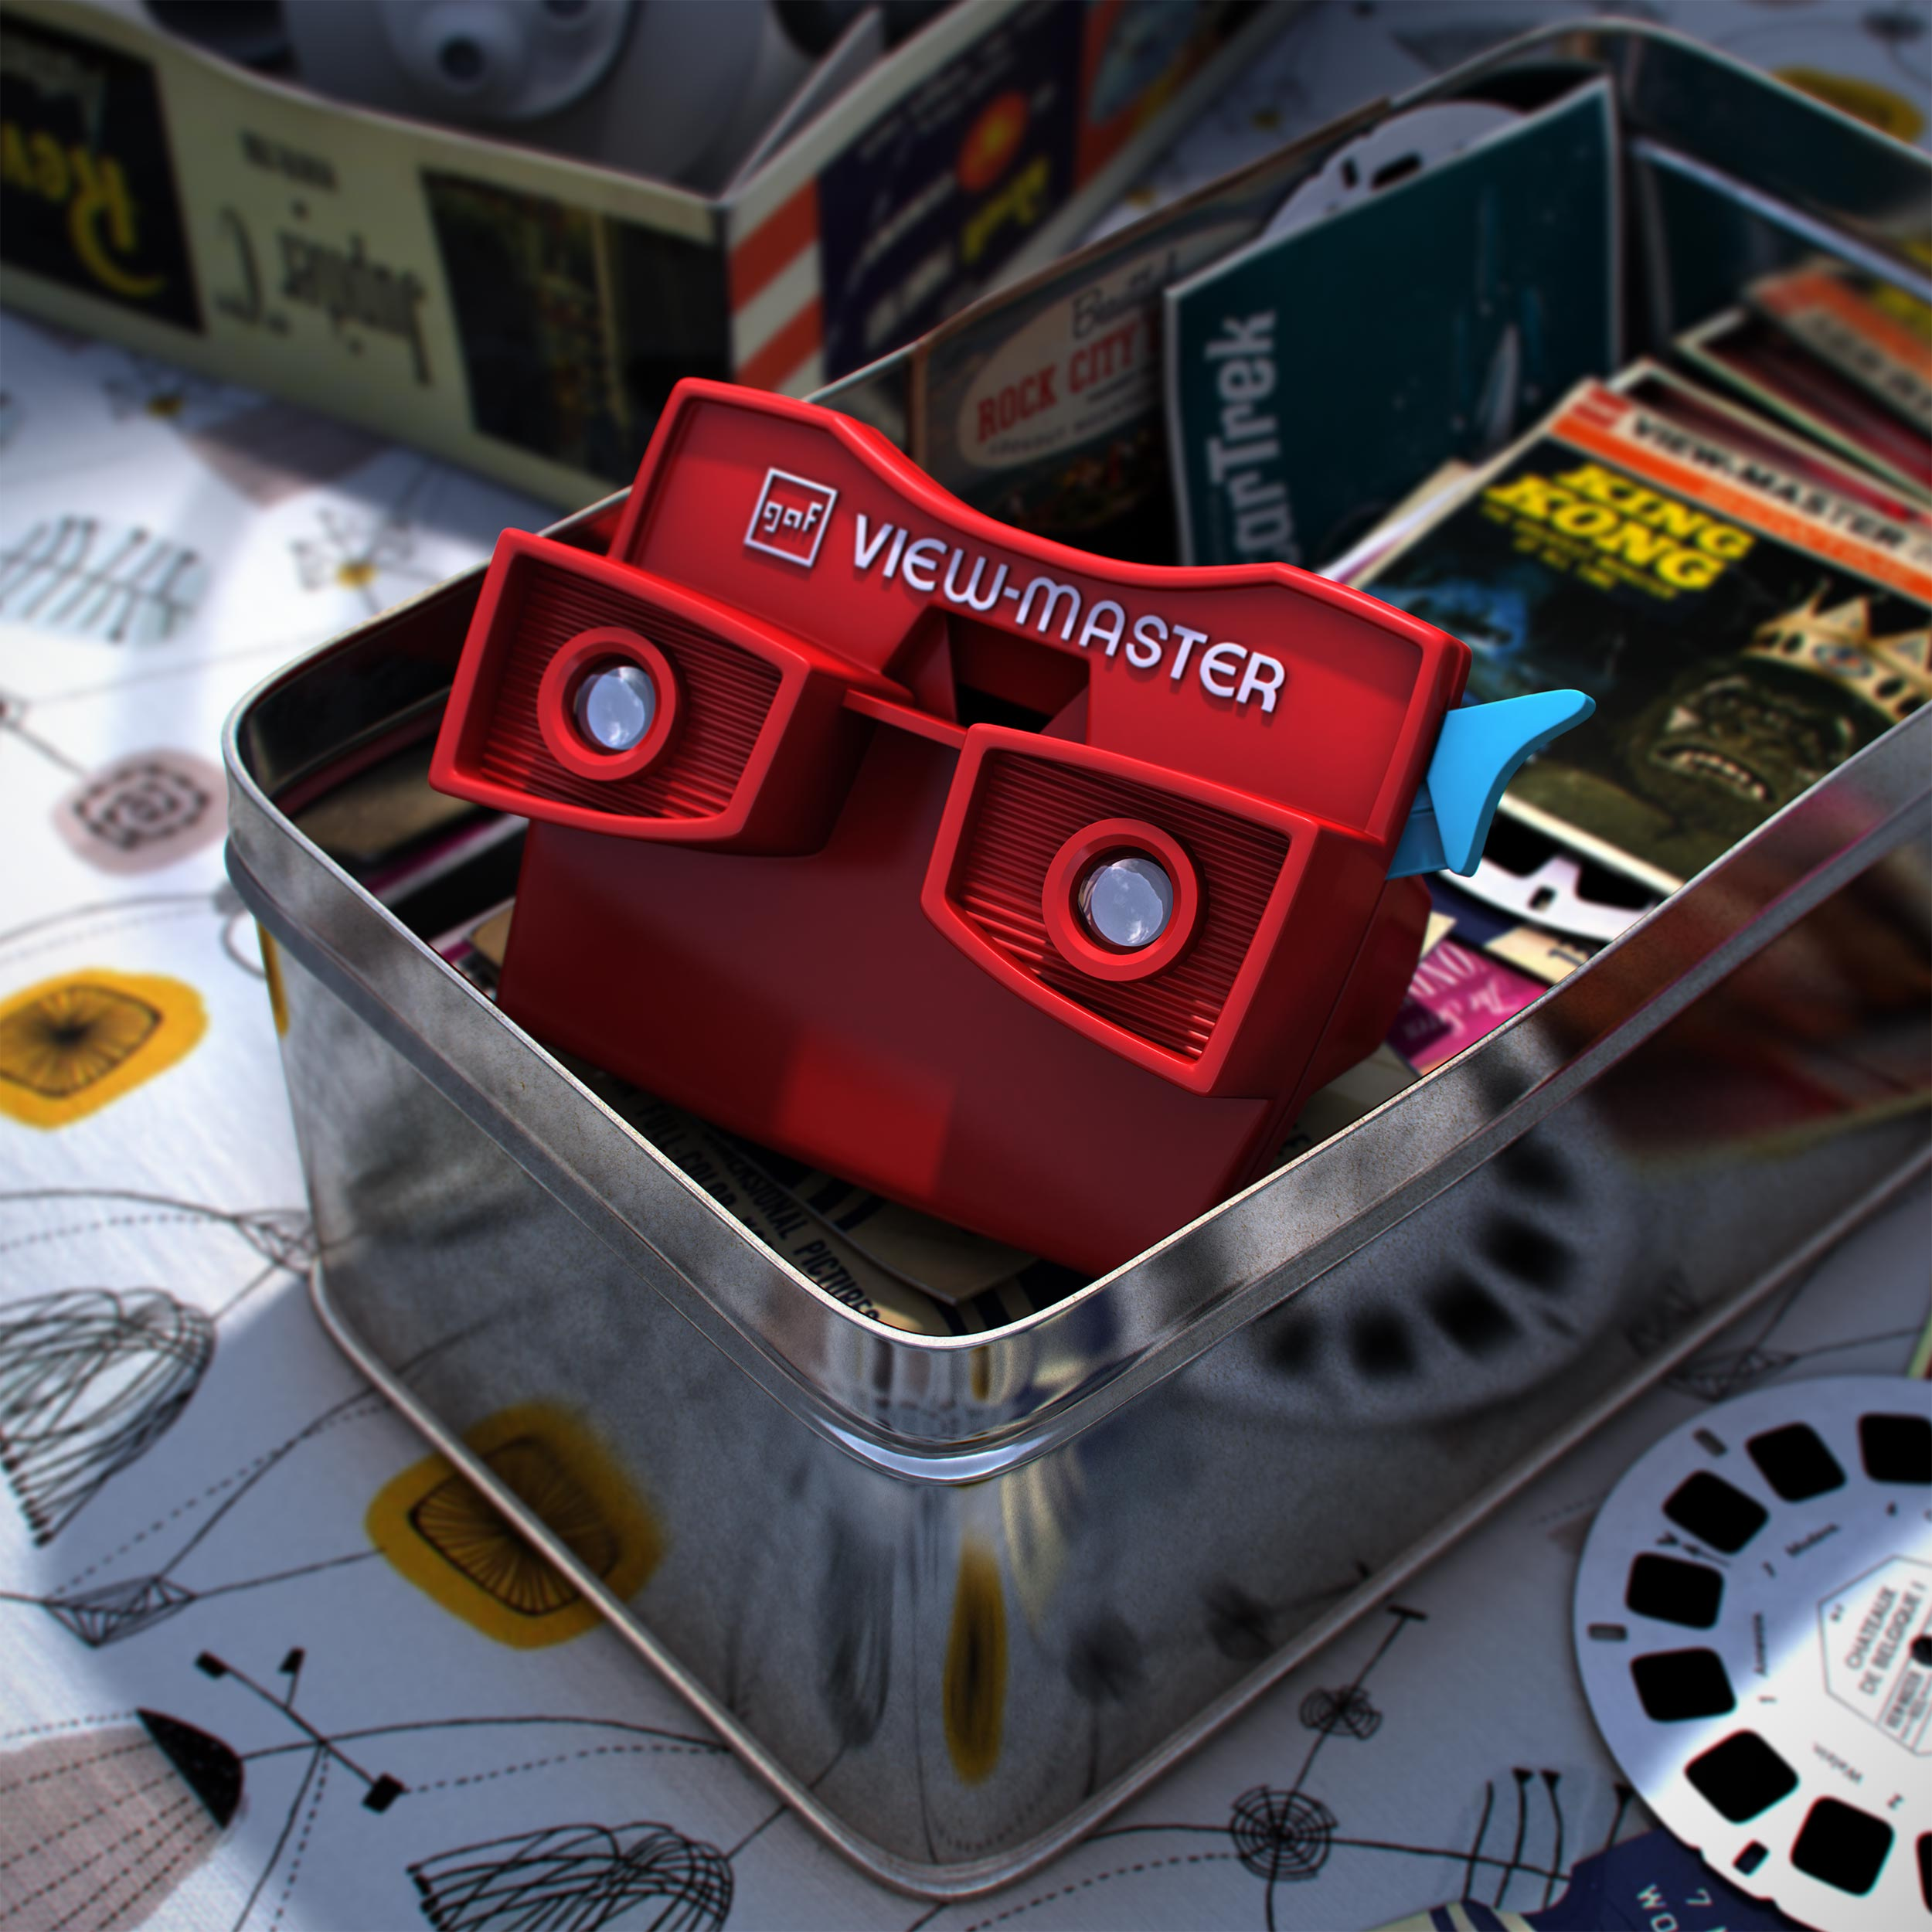 3d-viewmaster-nostalgia-by-astorza